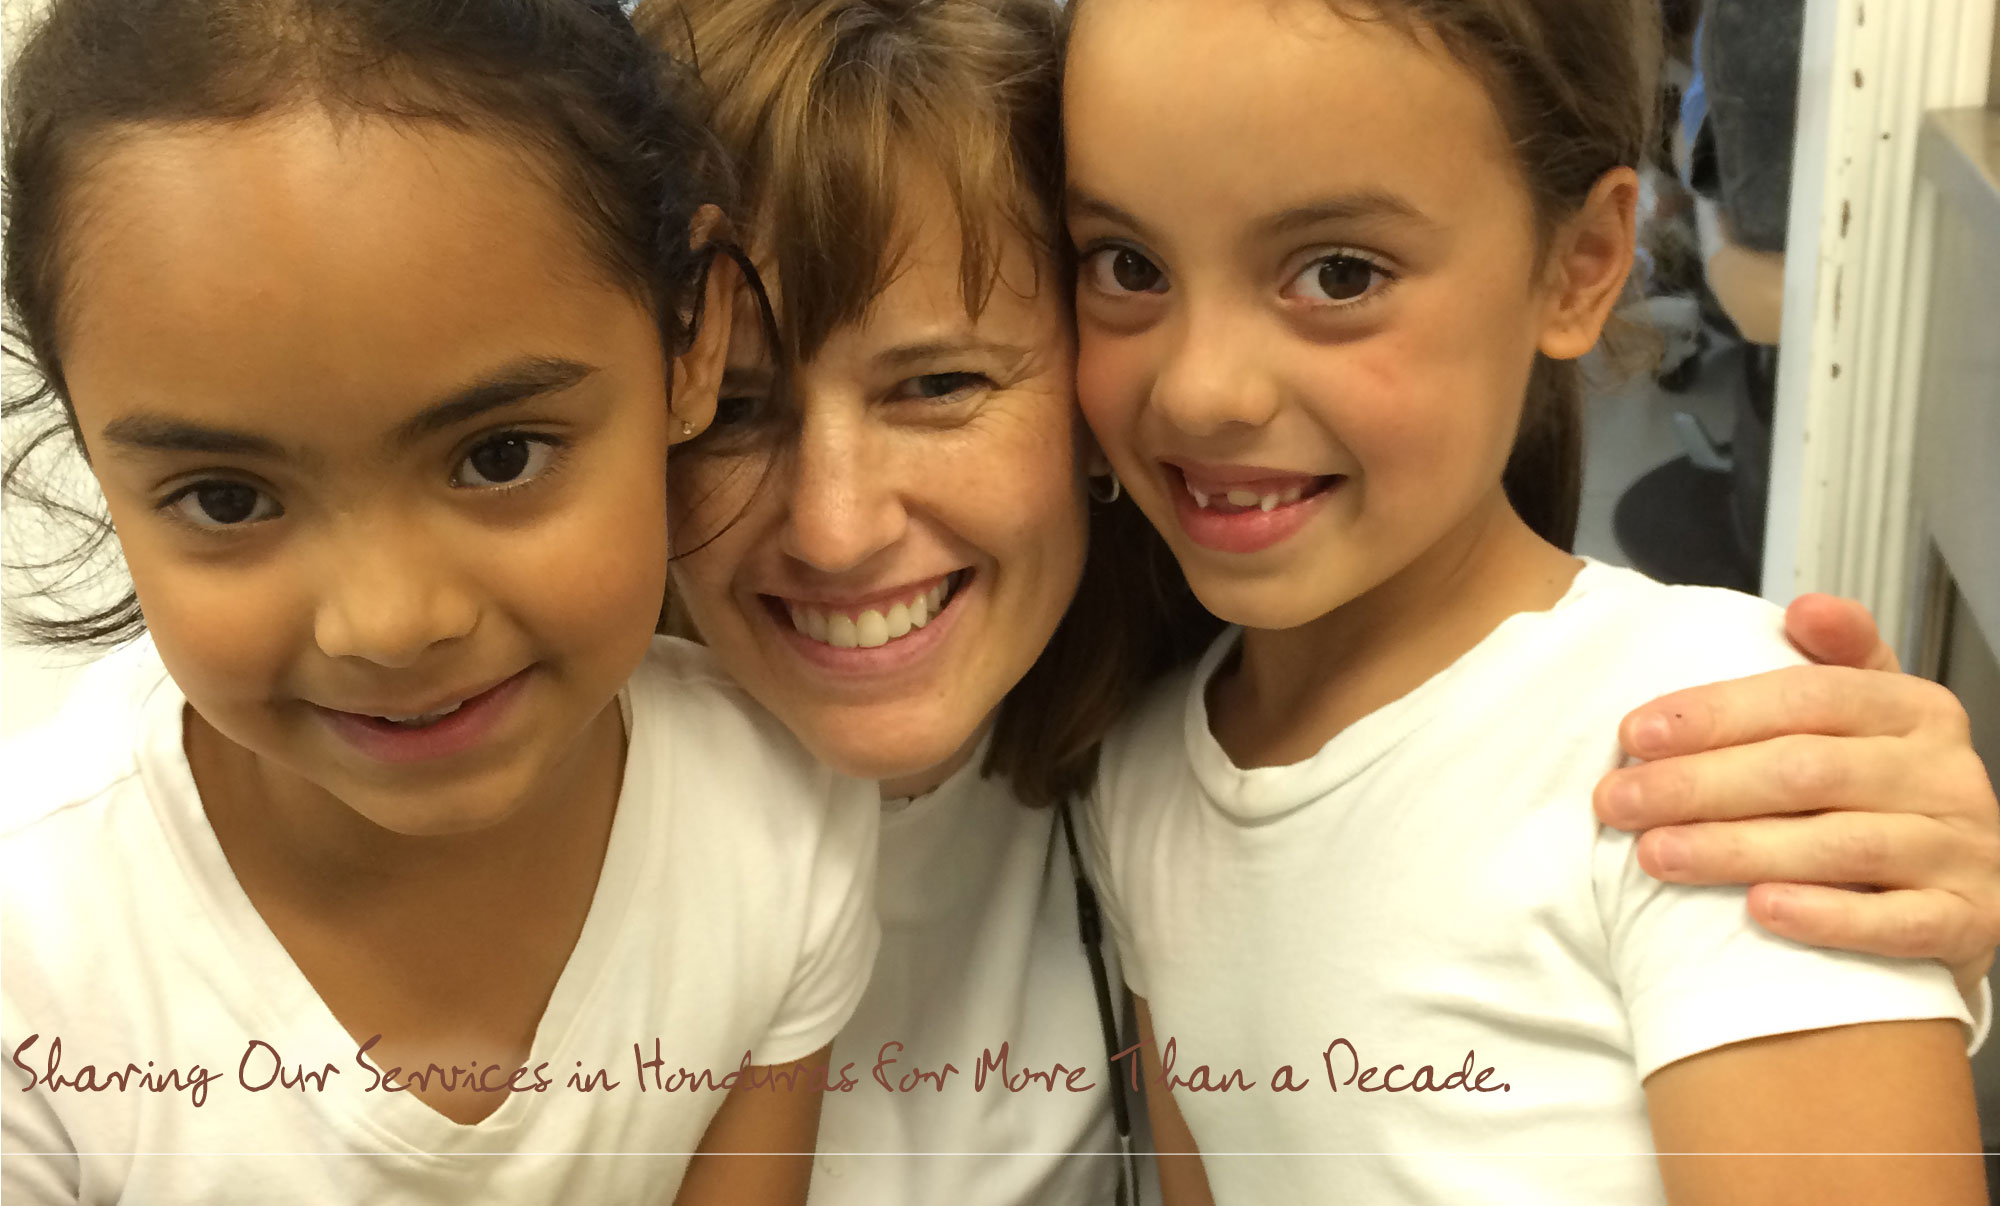 Dr. Kate Schacherl with two young girls